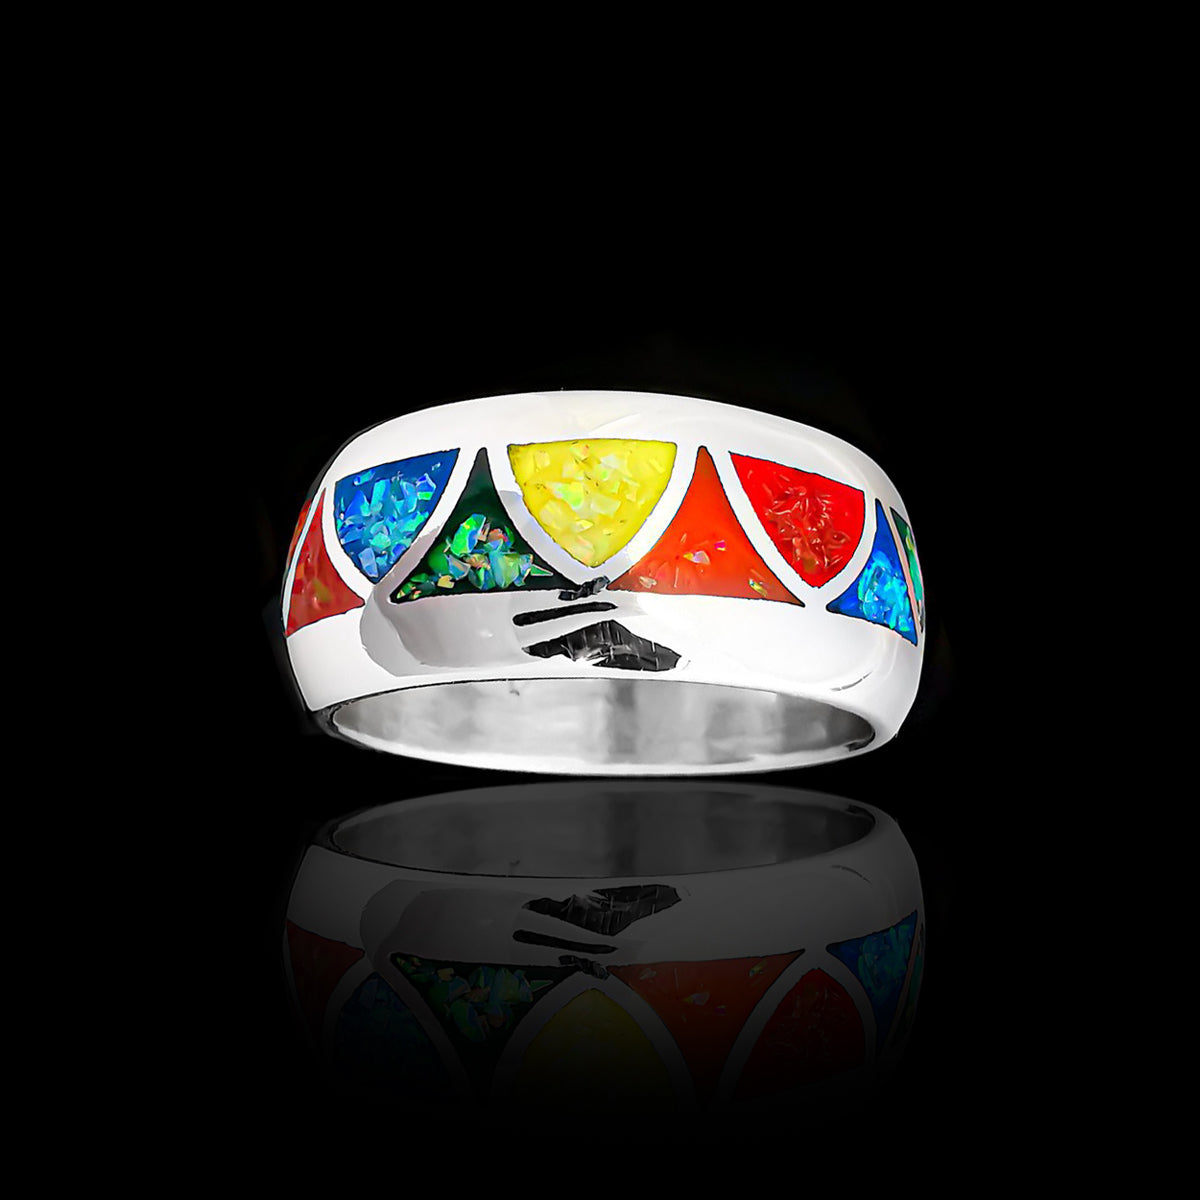 Wolvestuff's Wide Band Rainbow Pride Triangles Ring, handcrafted in sterling silver is inlaid with red, orange, yellow, green, and blue opals in a rainbow pattern